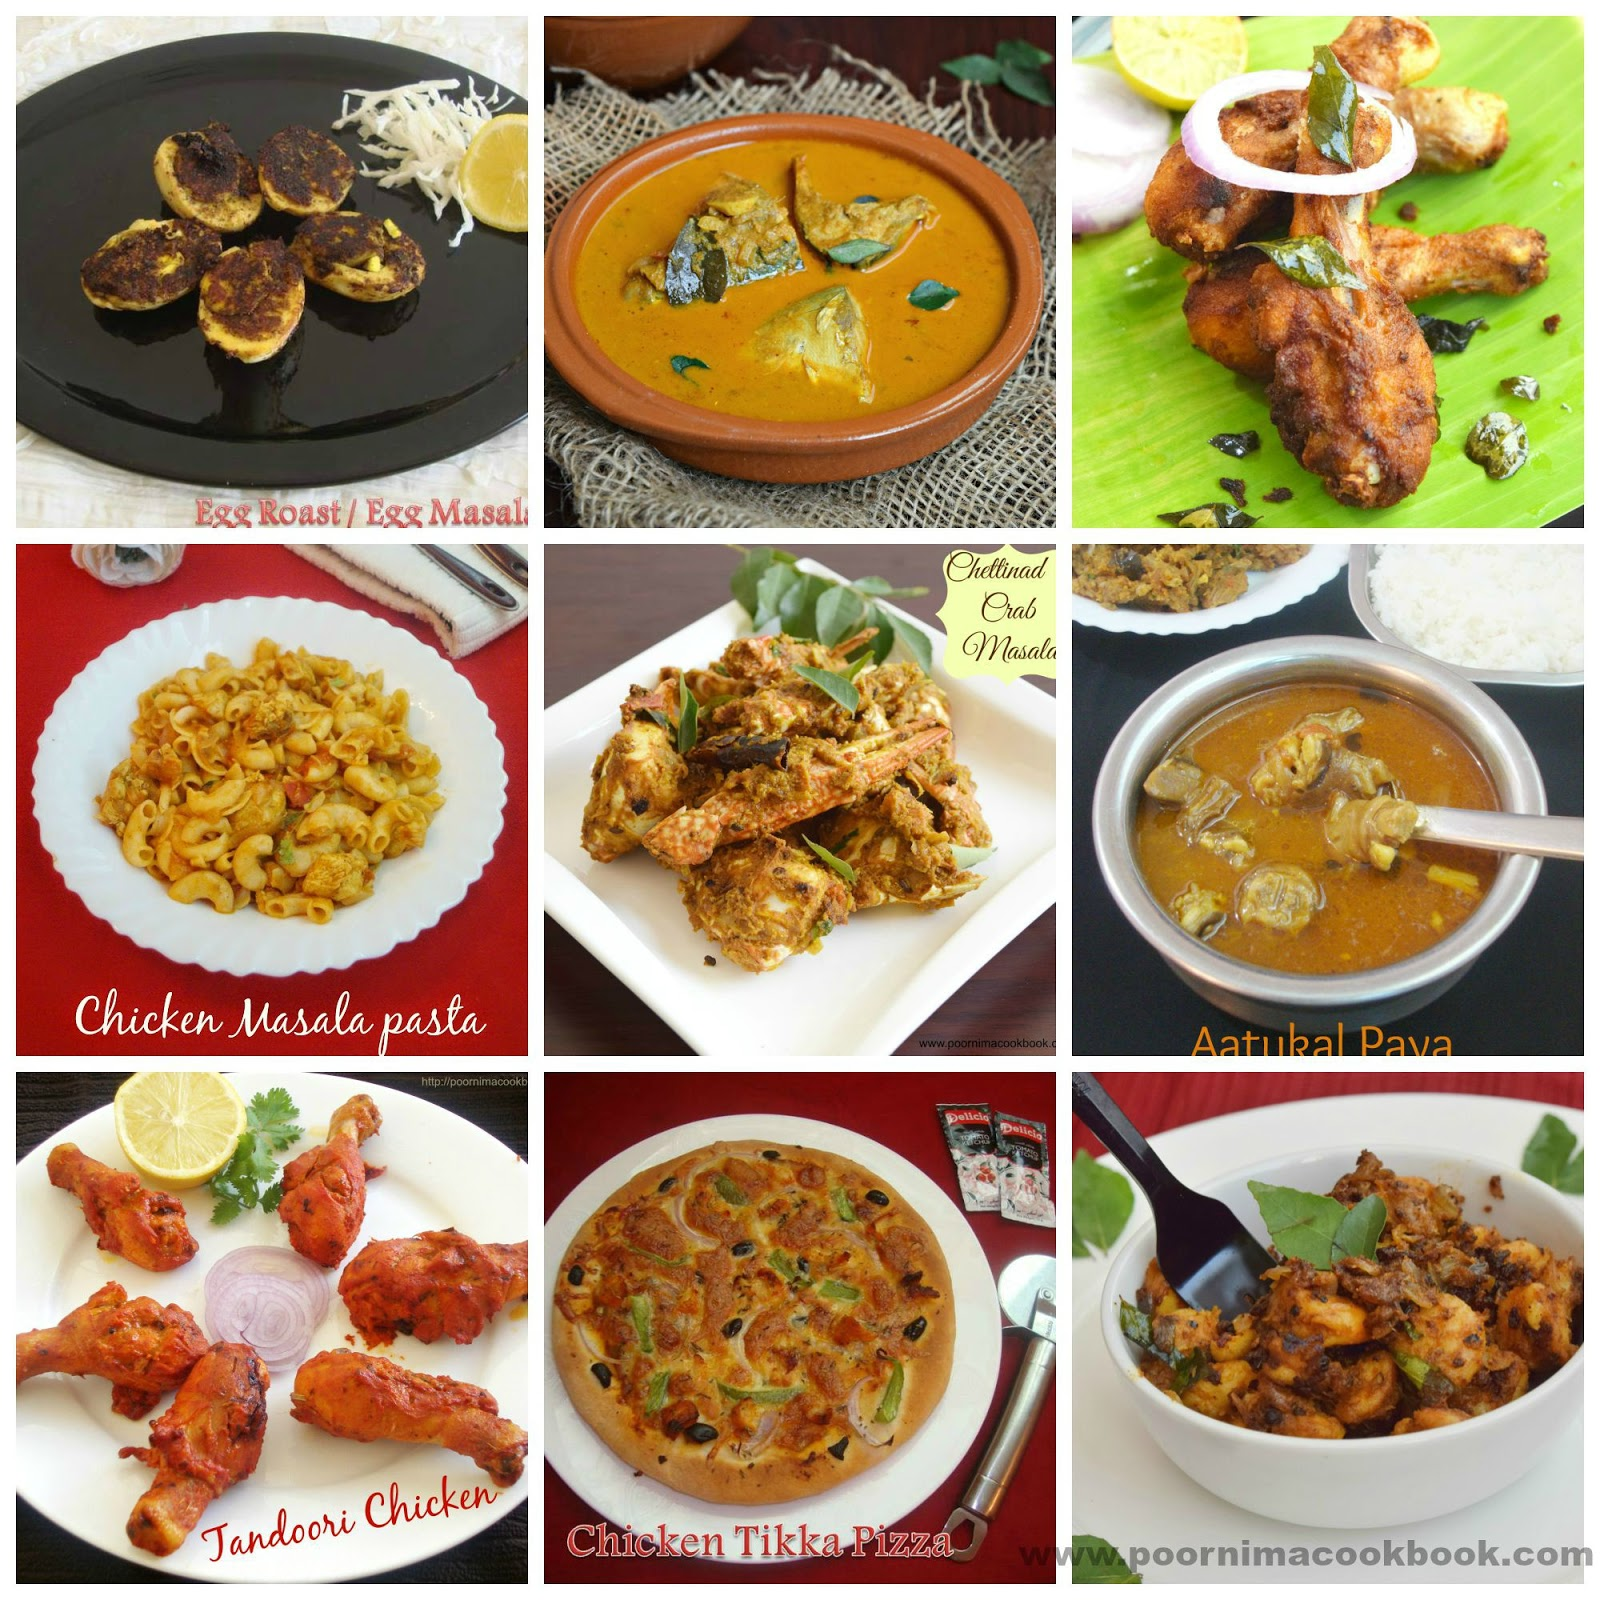 Poornimas cook book non veg delicacies non veg recipes mouthwatering non veg recipes includes egg chicken mutton as well as organ meat and sea food delicacies i have covered south indian north indian forumfinder Choice Image